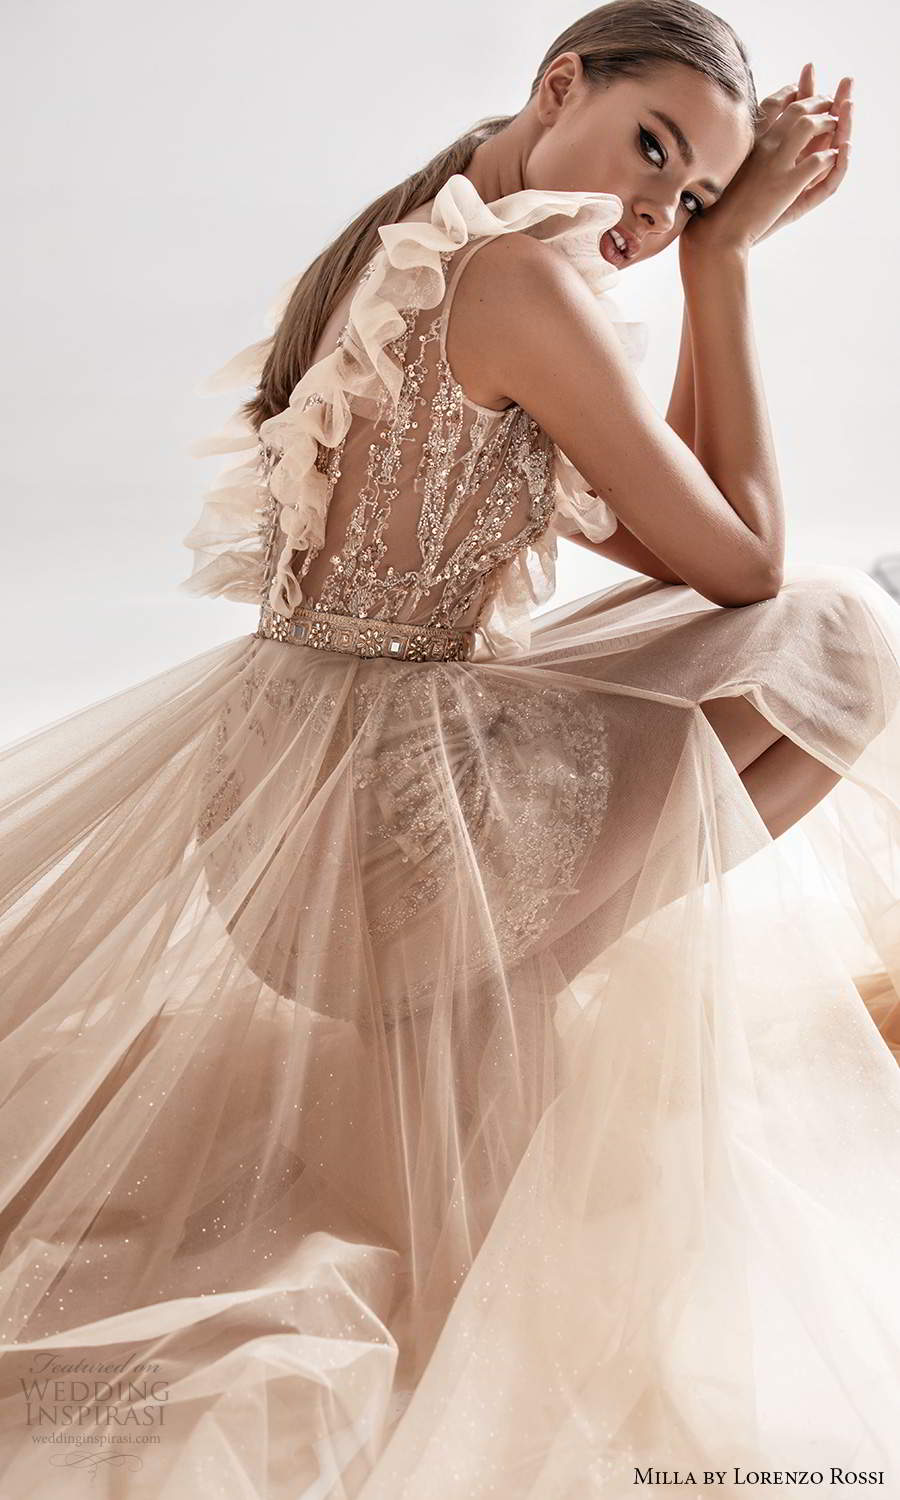 milla by lorenzo rossi 2020 rtw sleeveless ruffle straps plunging v neckline fully embellished a line ball gown wedding dress blush champagne (1) zsv